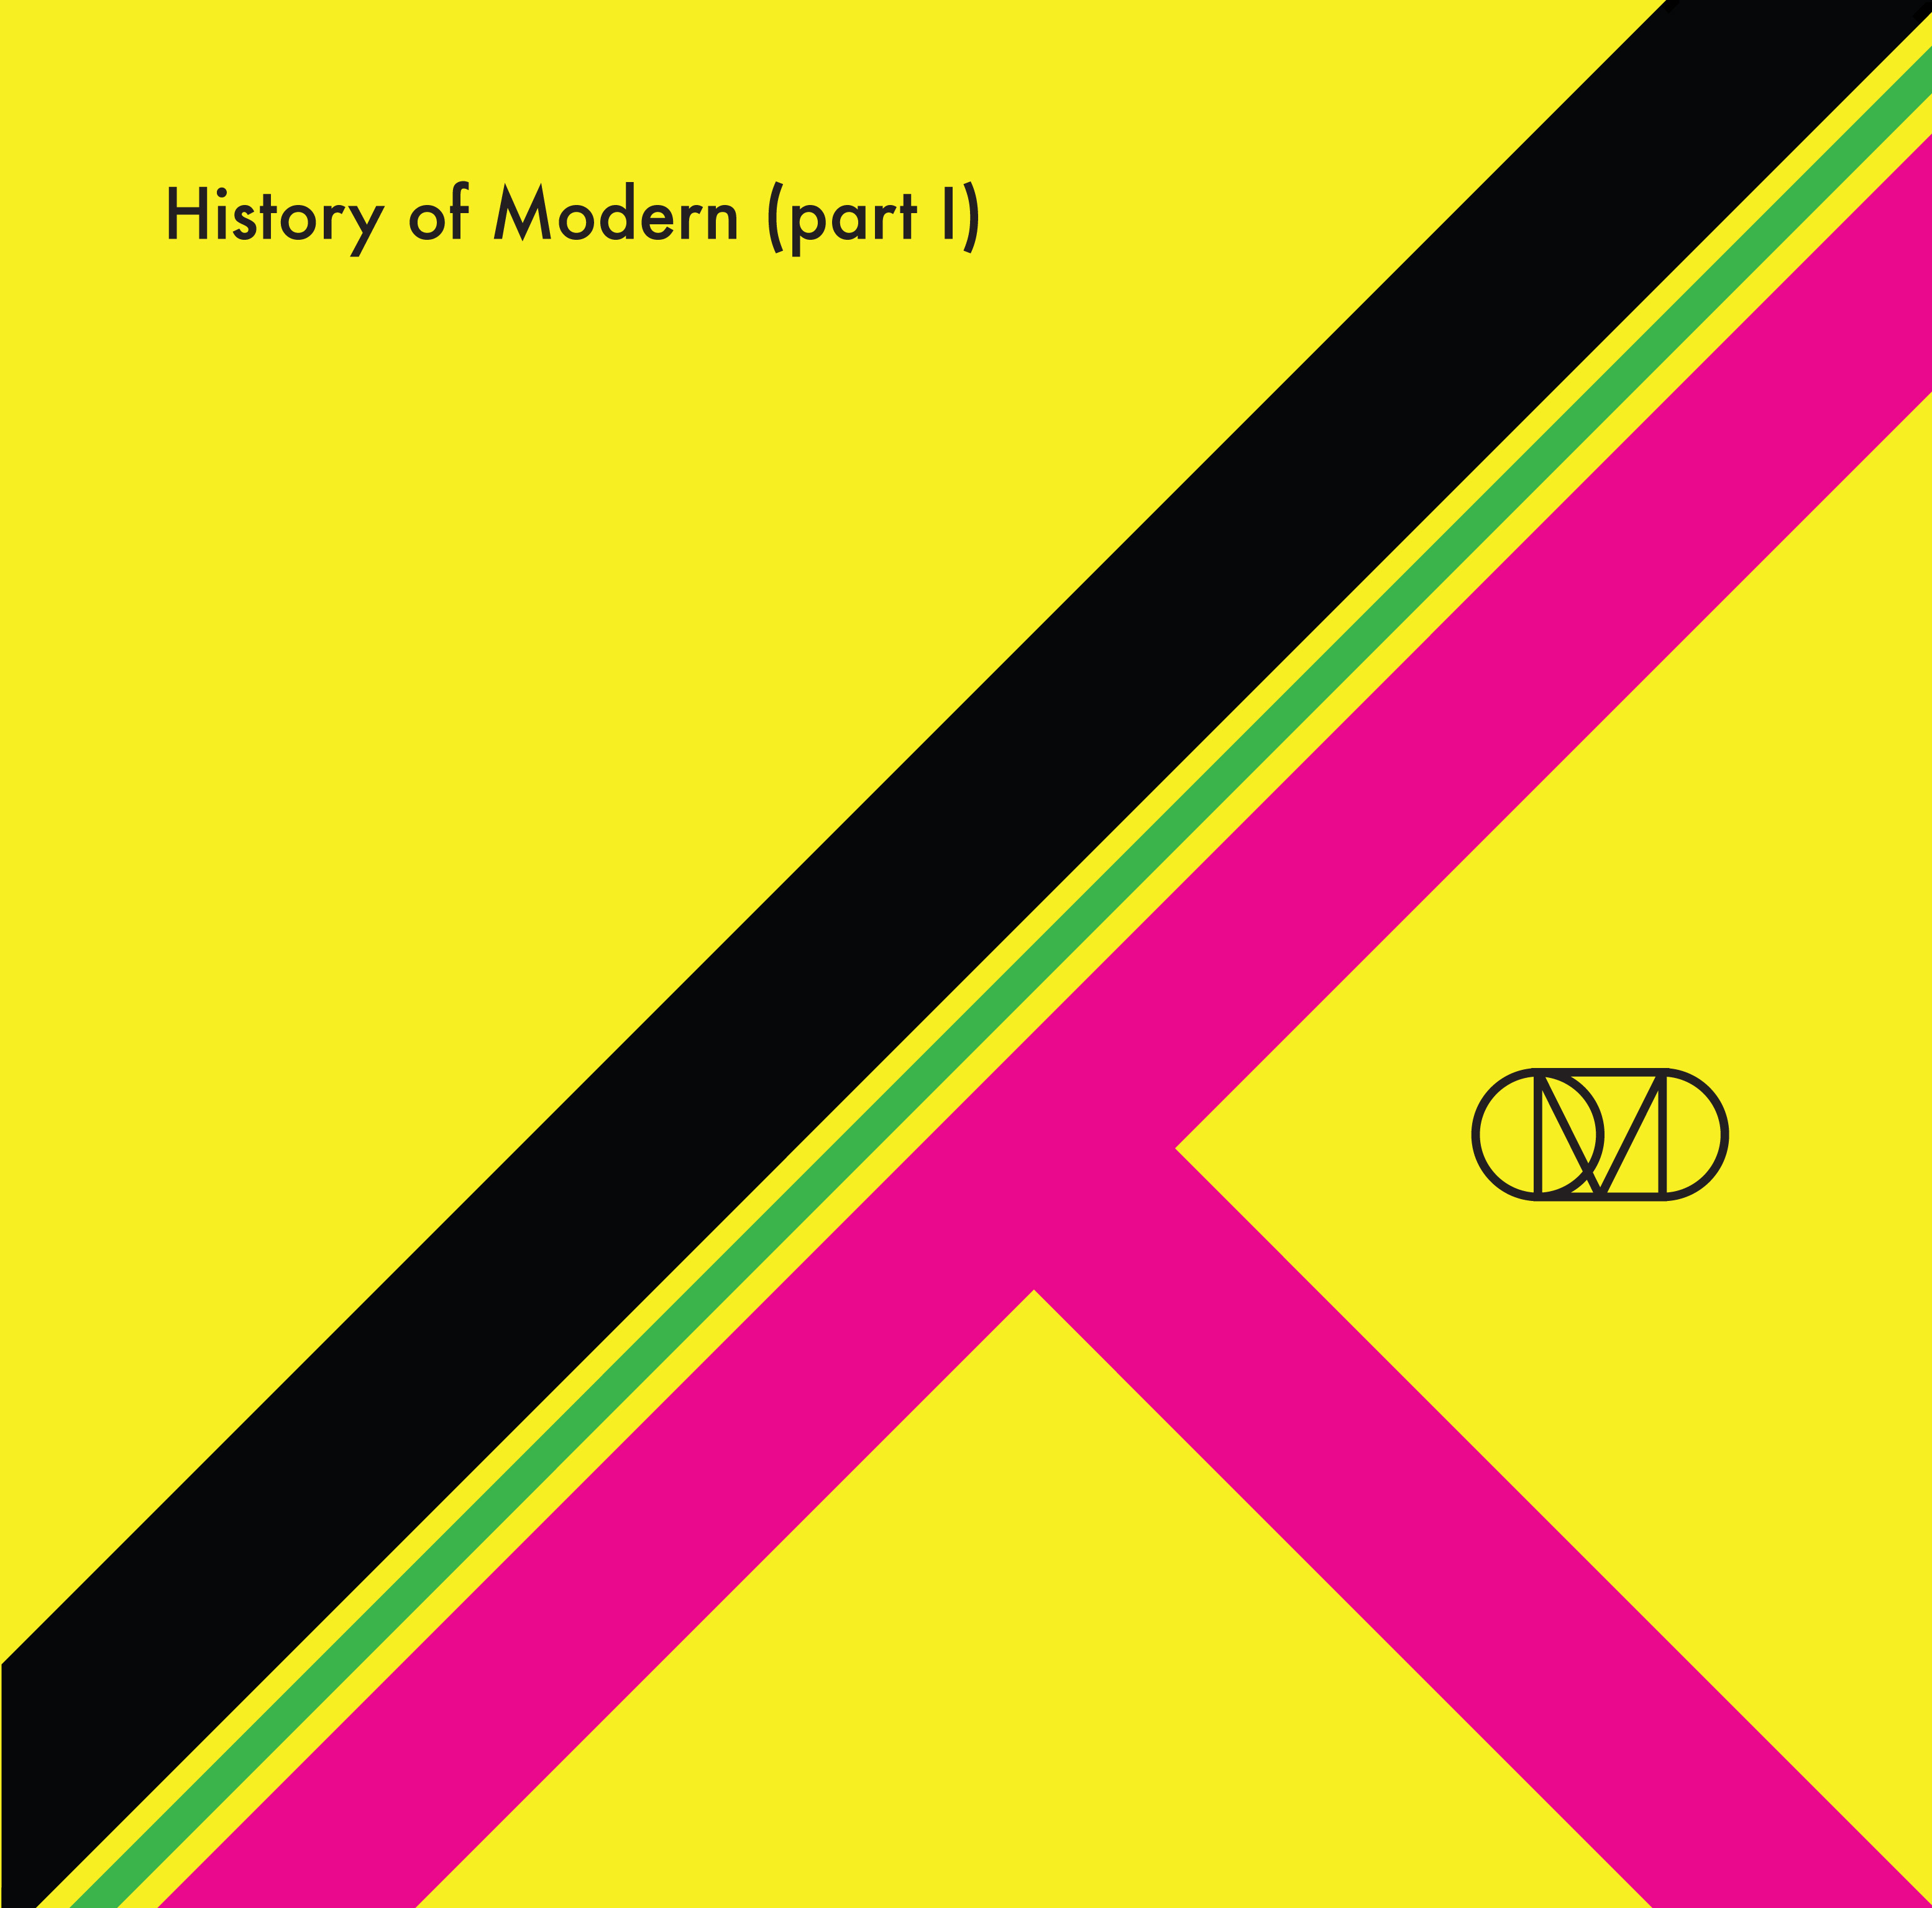 Video: OMD, 'History of Modern (Part I)'